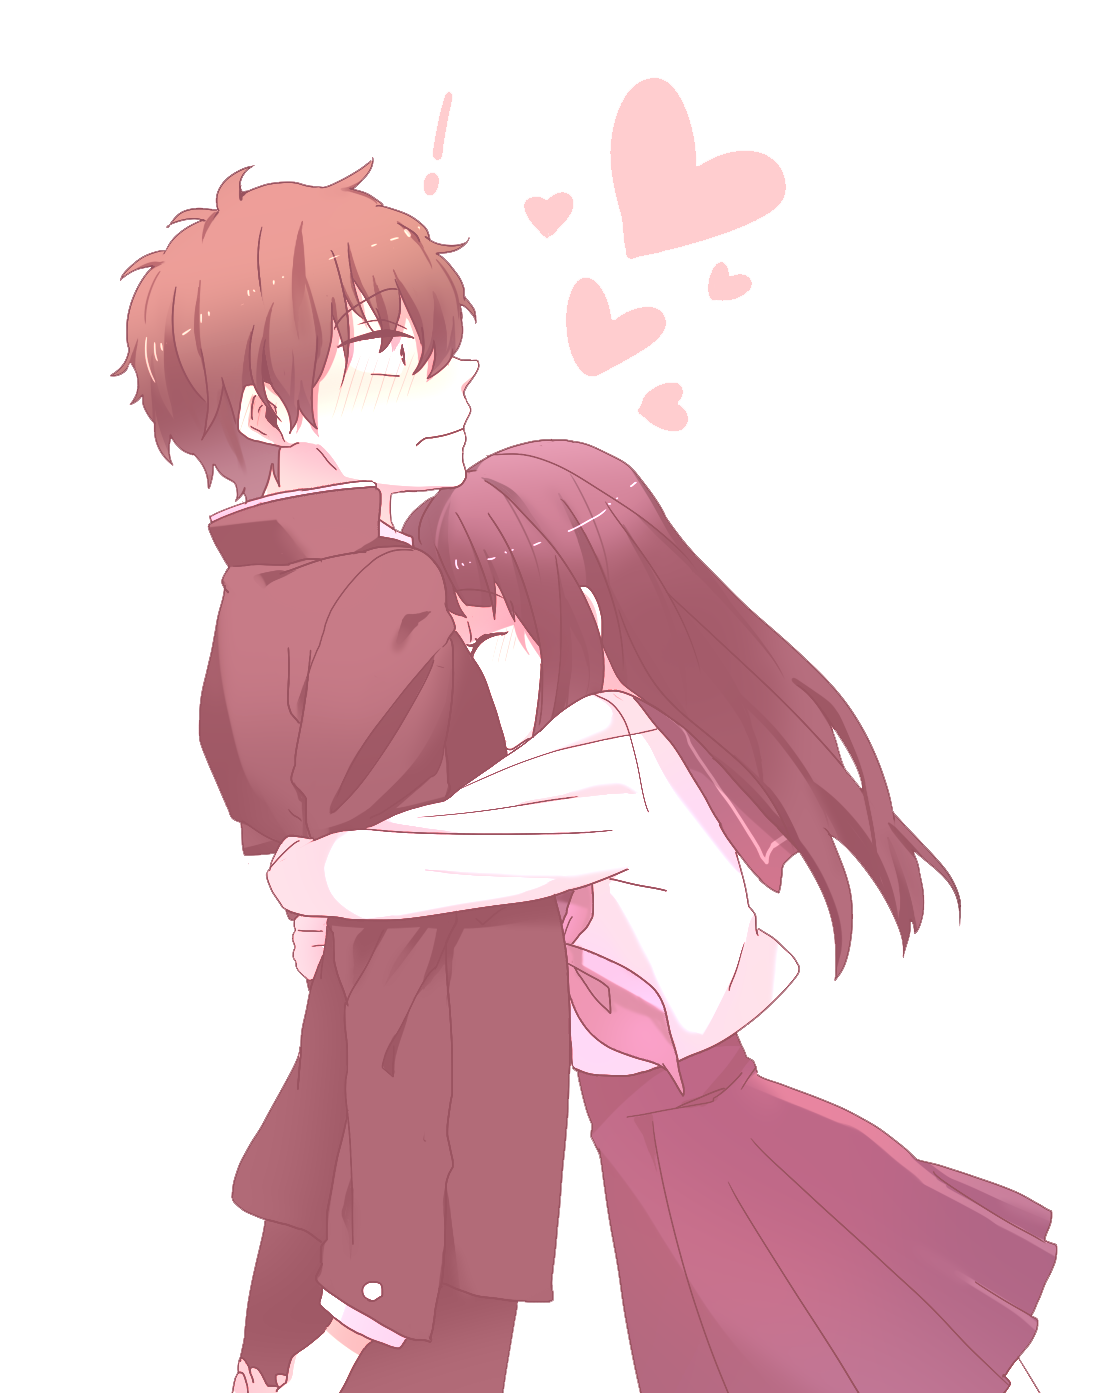 Anime Love Couple Png Transparent Png Mart